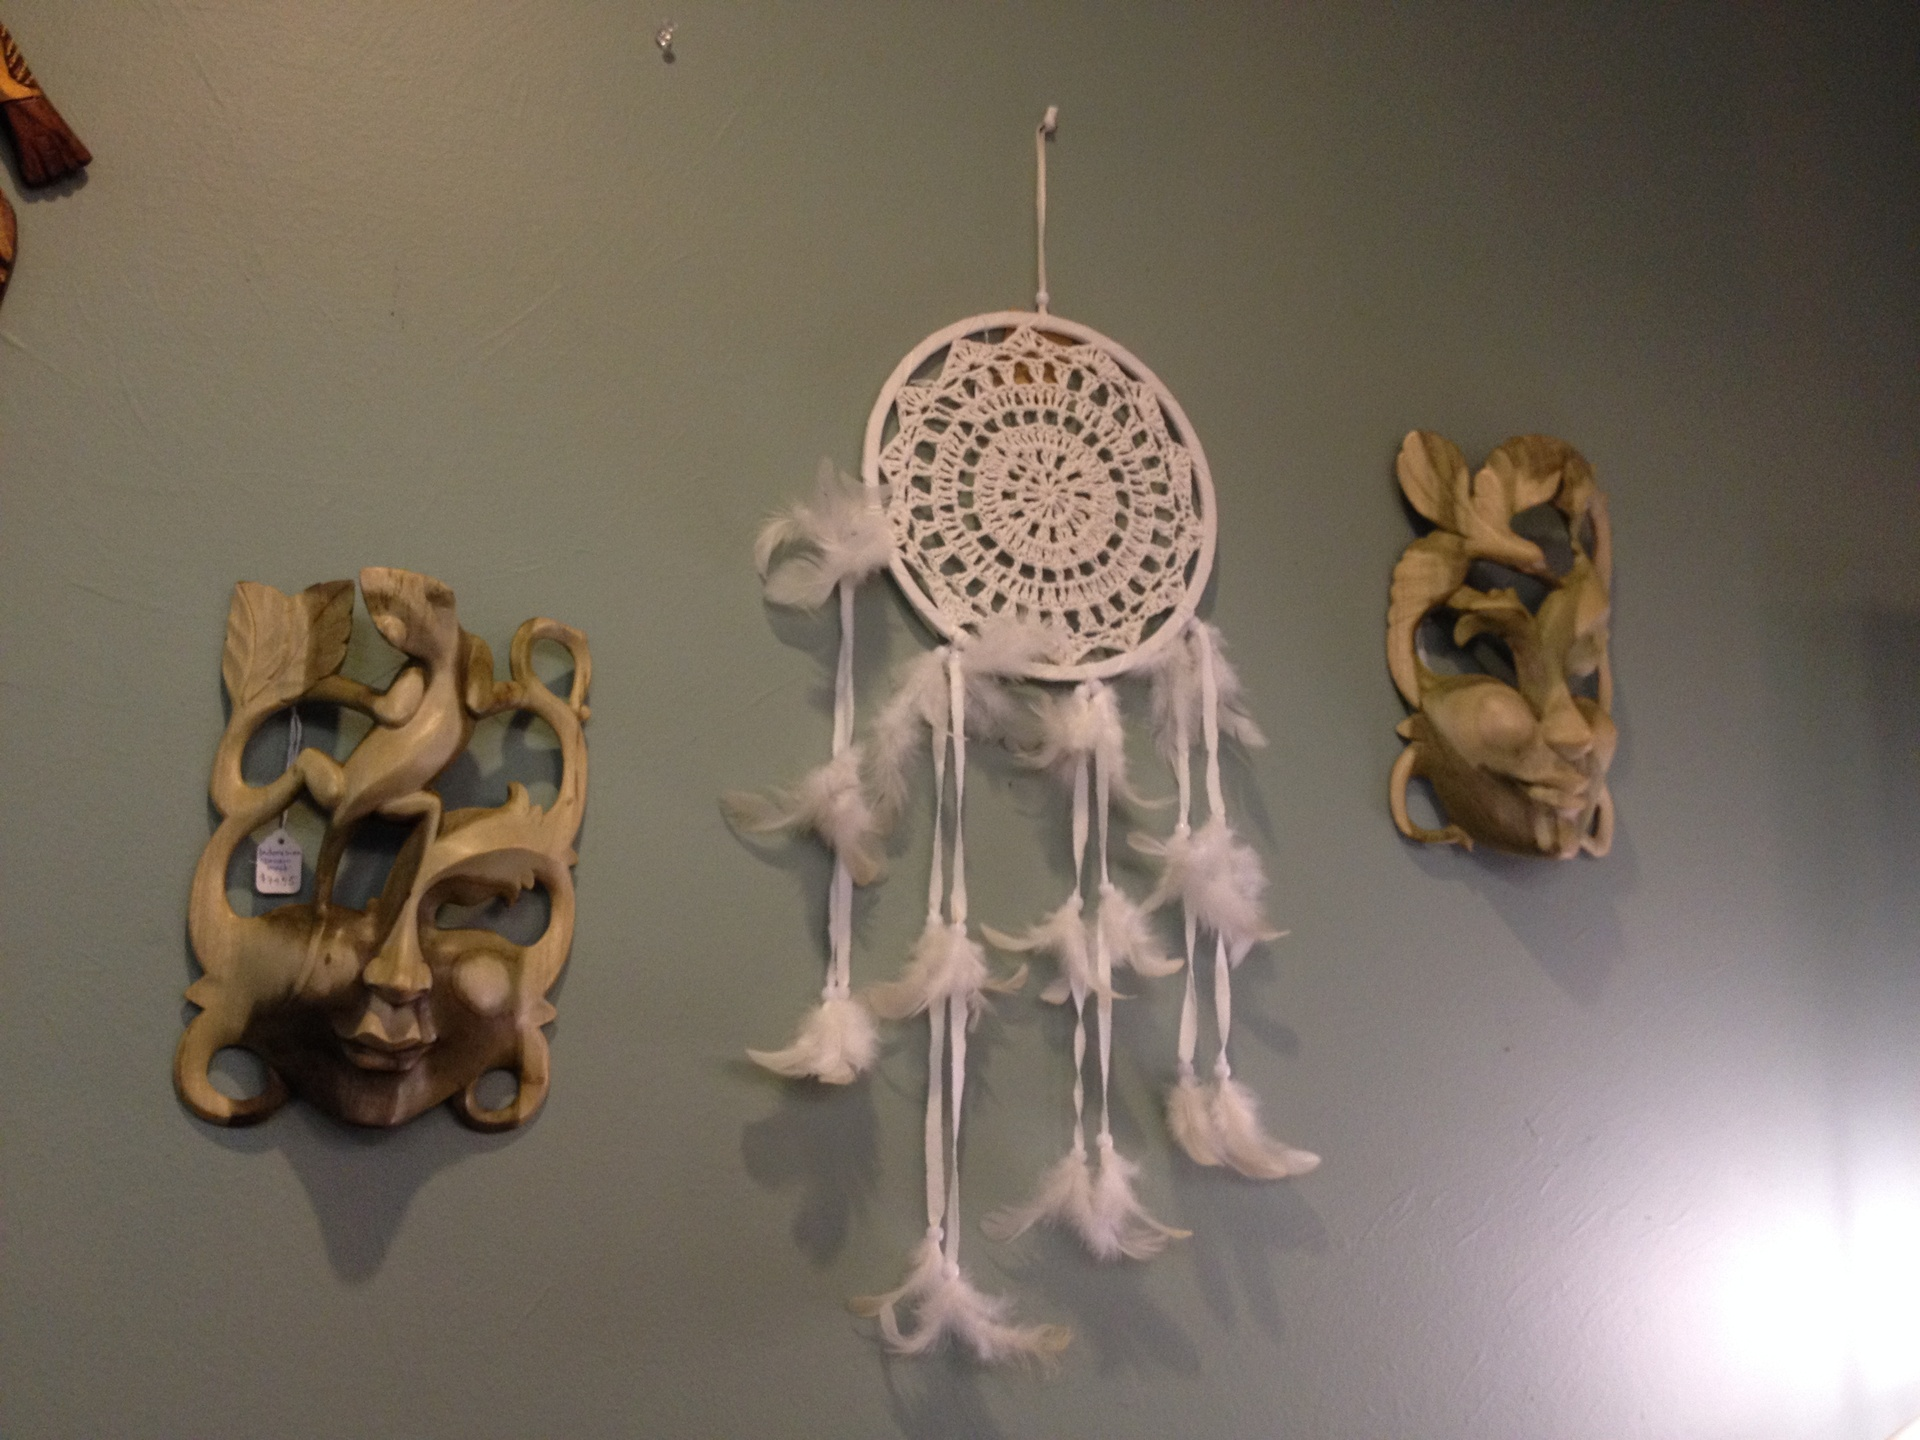 Dream Masks and Lace dreamcatcher from Bali